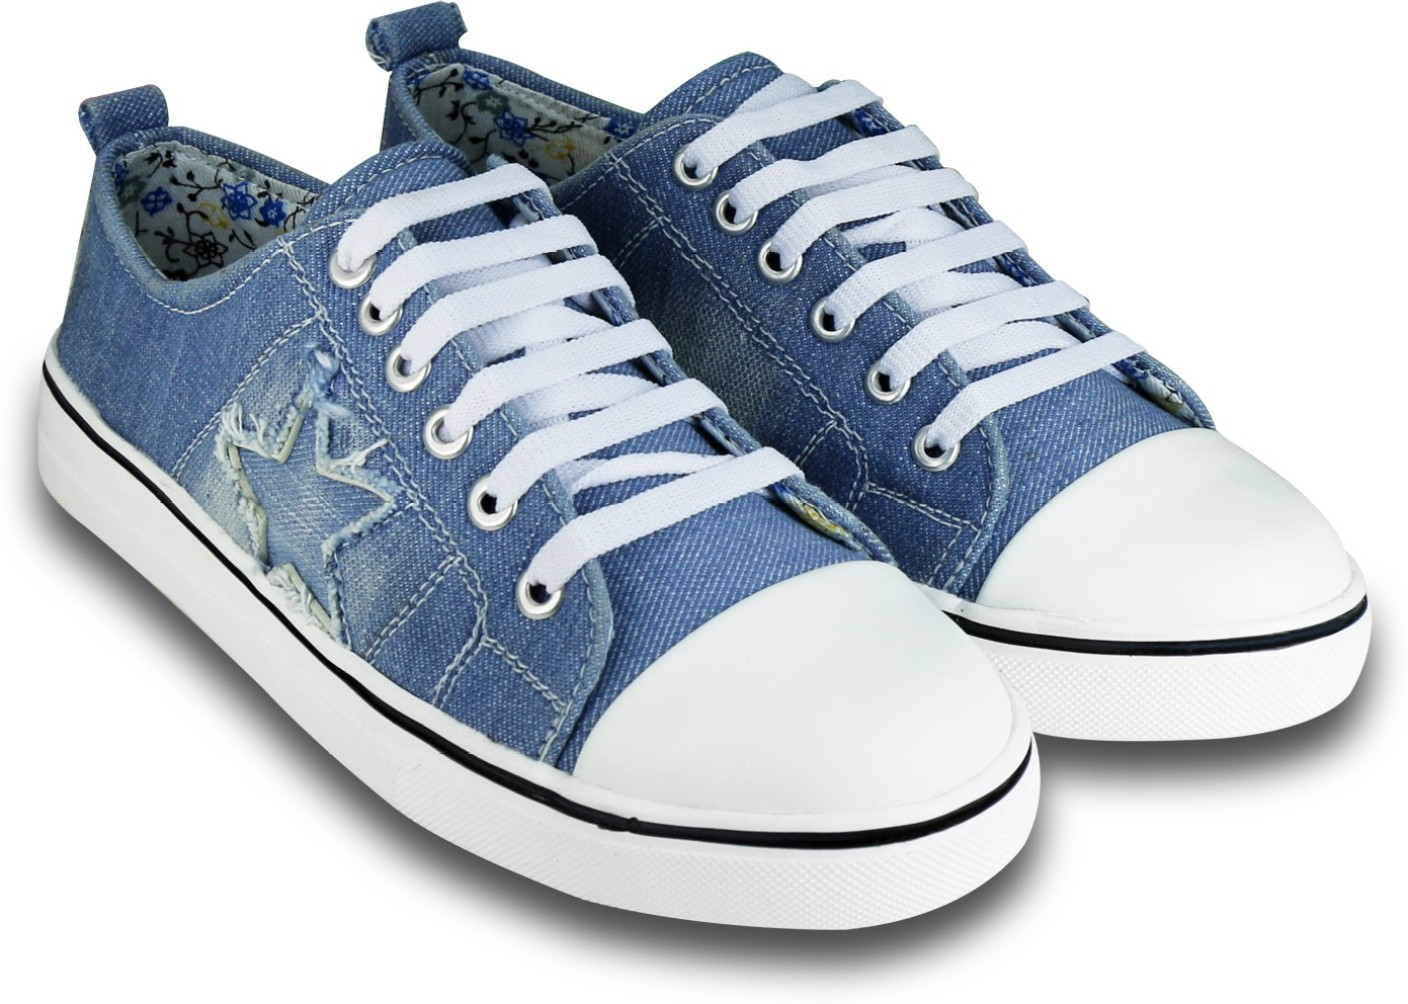 Beonza Sneakers For Women - Buy Blue Color Beonza Sneakers ...